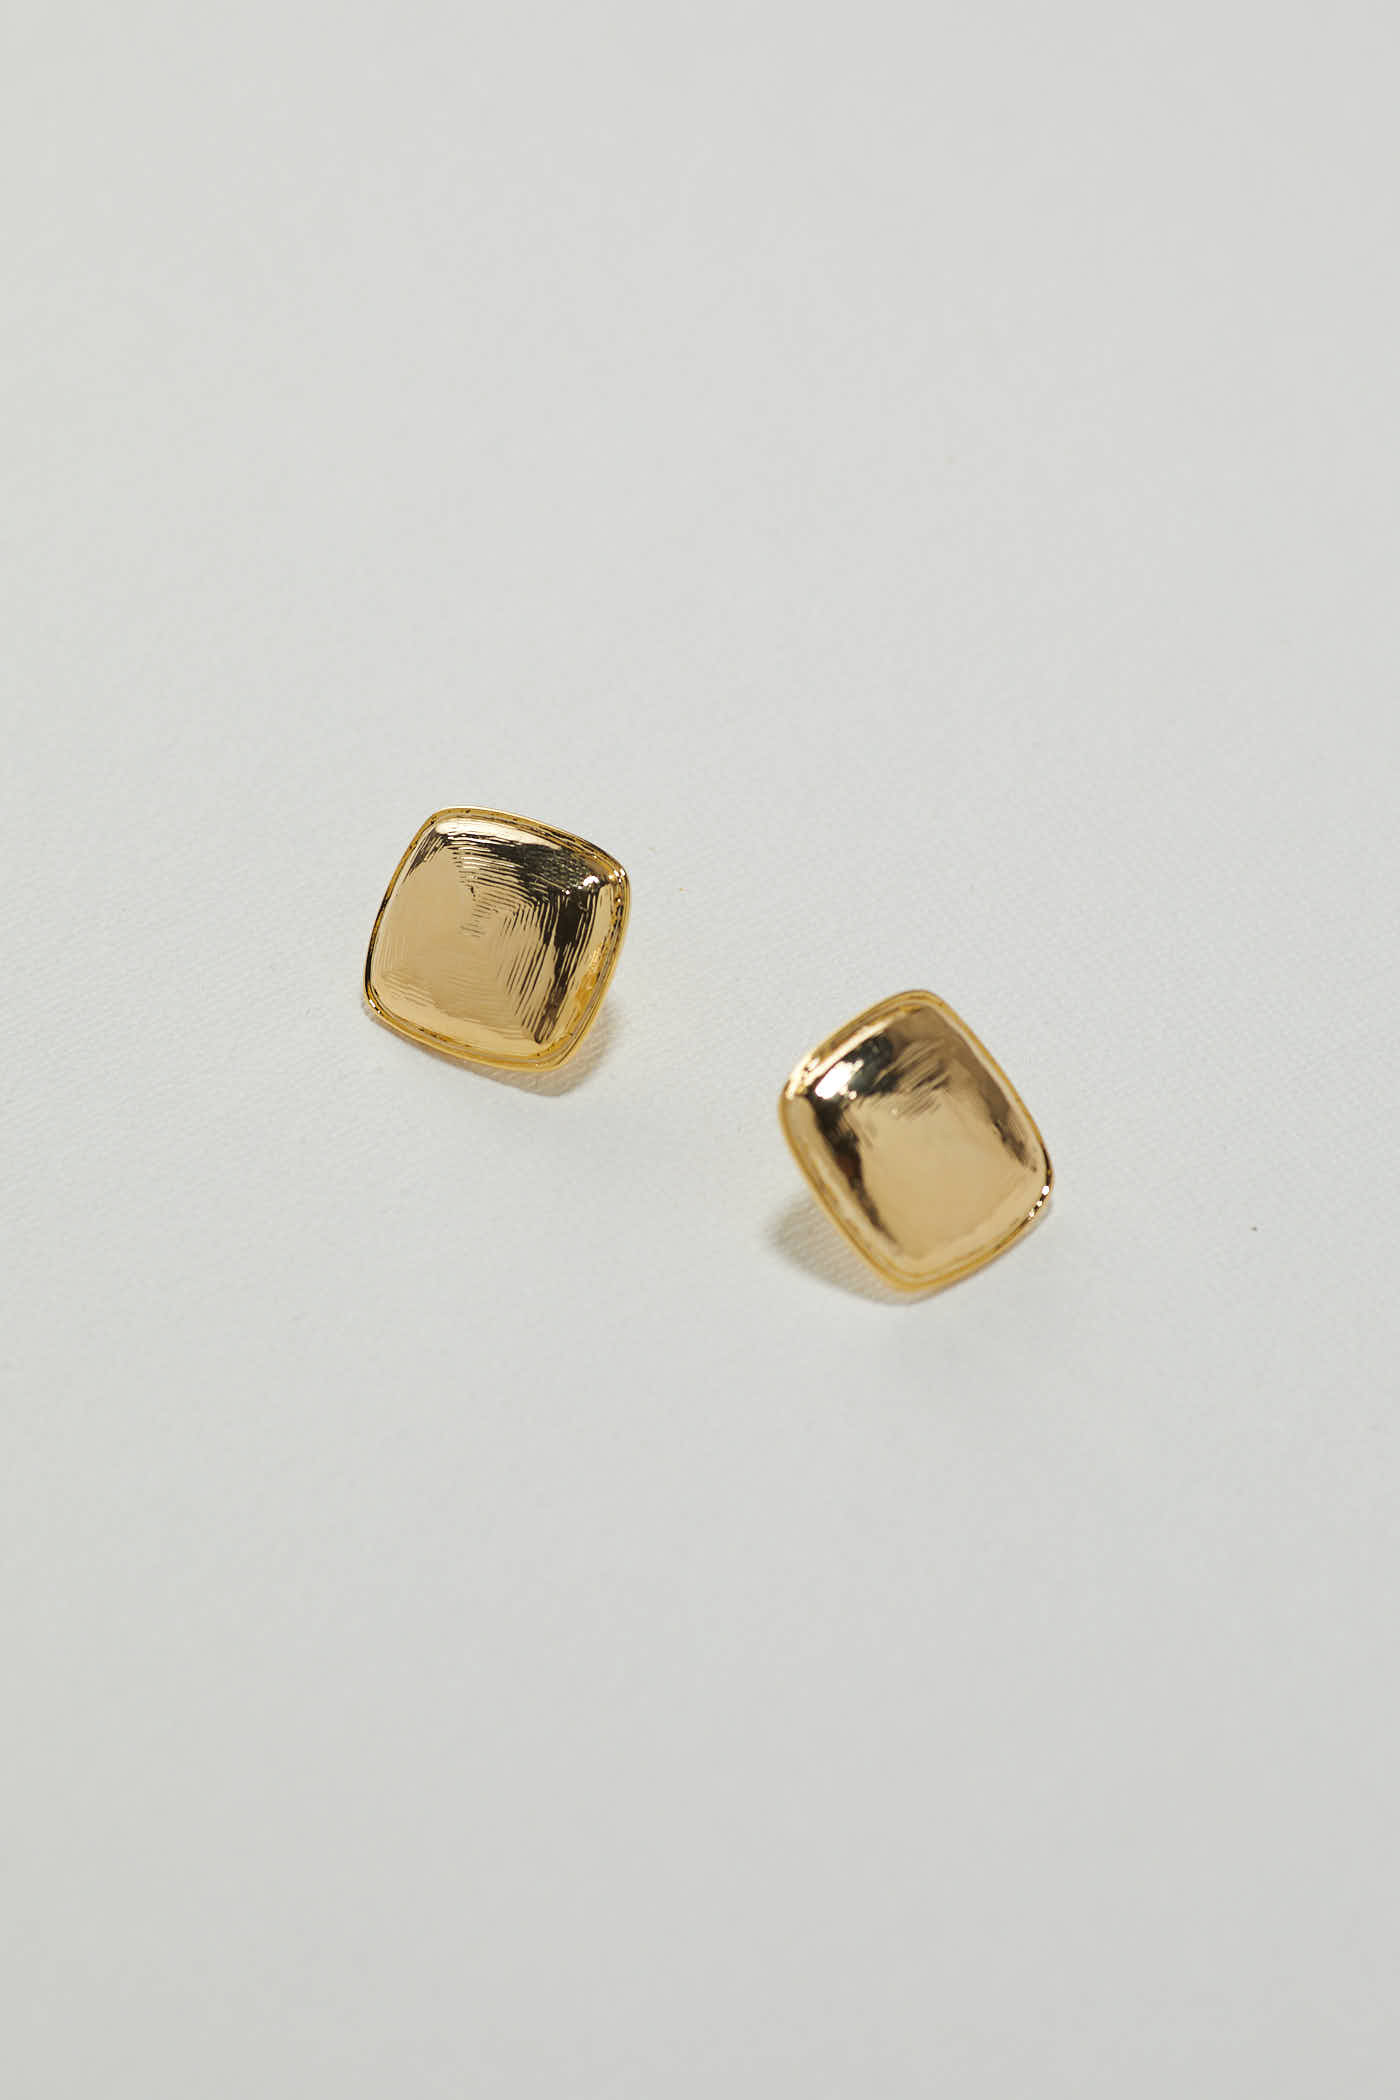 Tabie Earrings